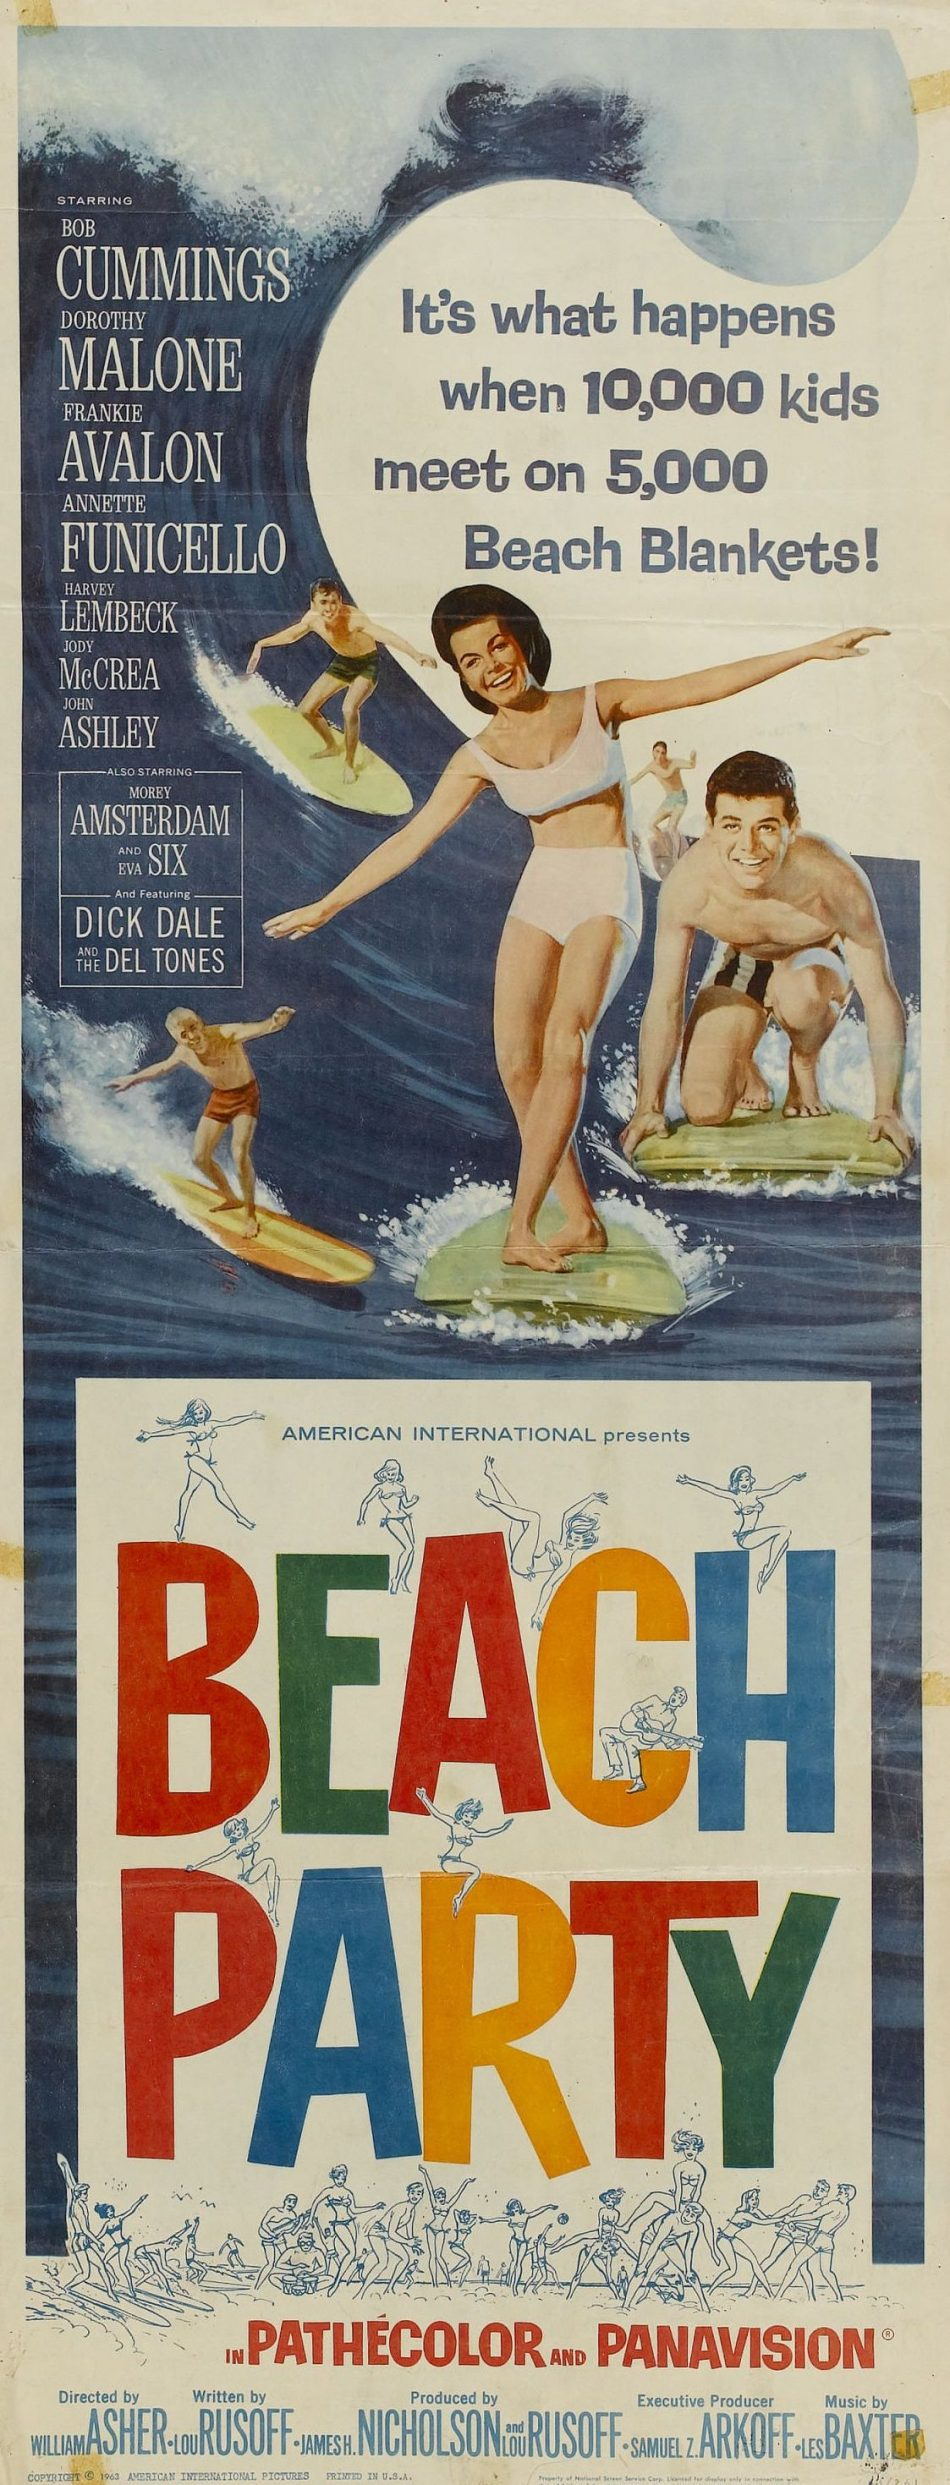 I loved this movie as a young girl in California!